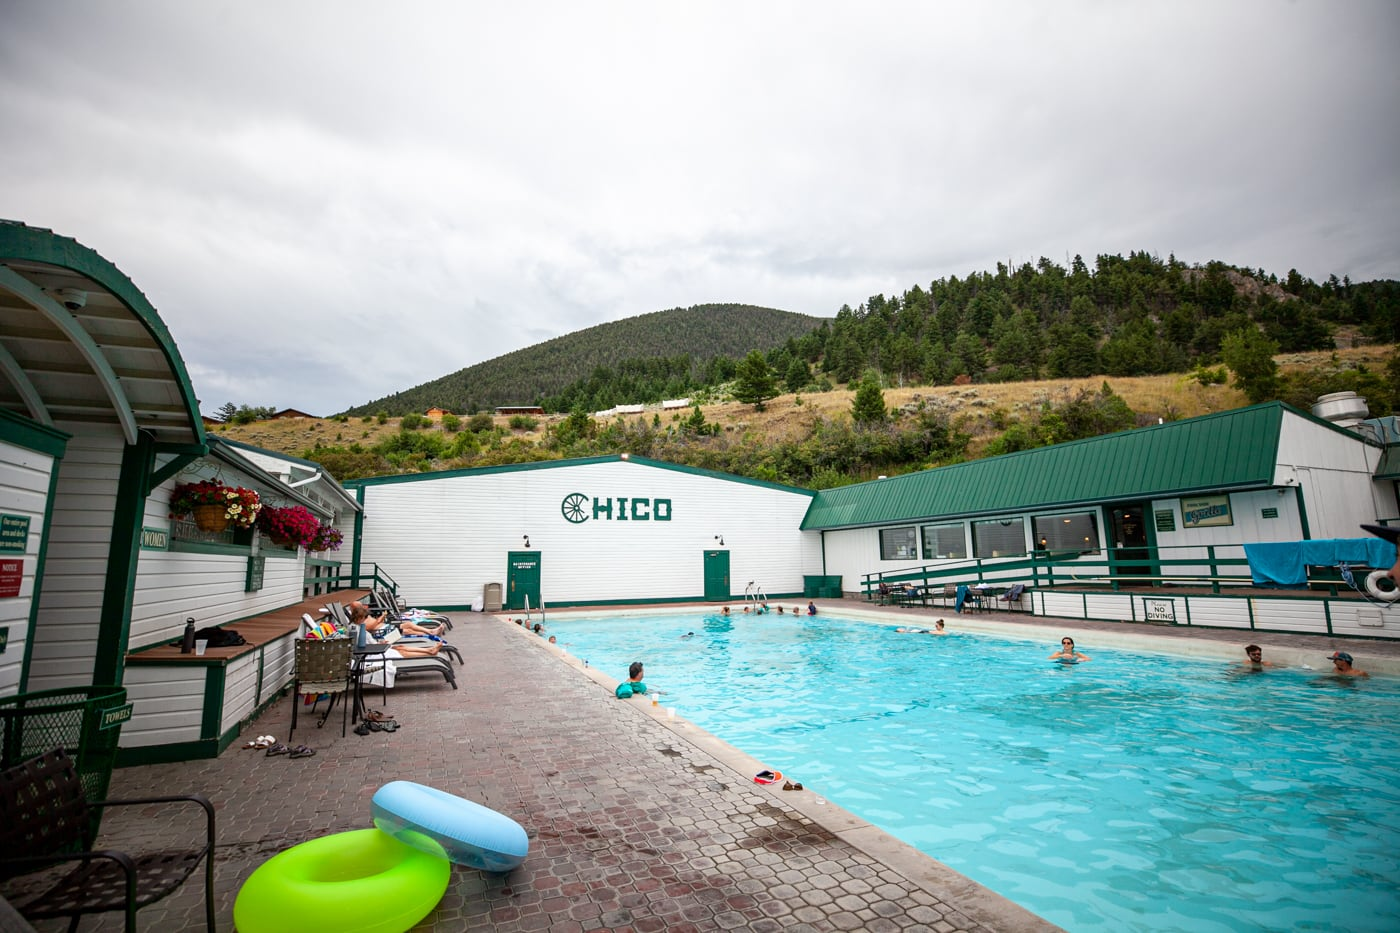 Chico Hot Springs in Montana.